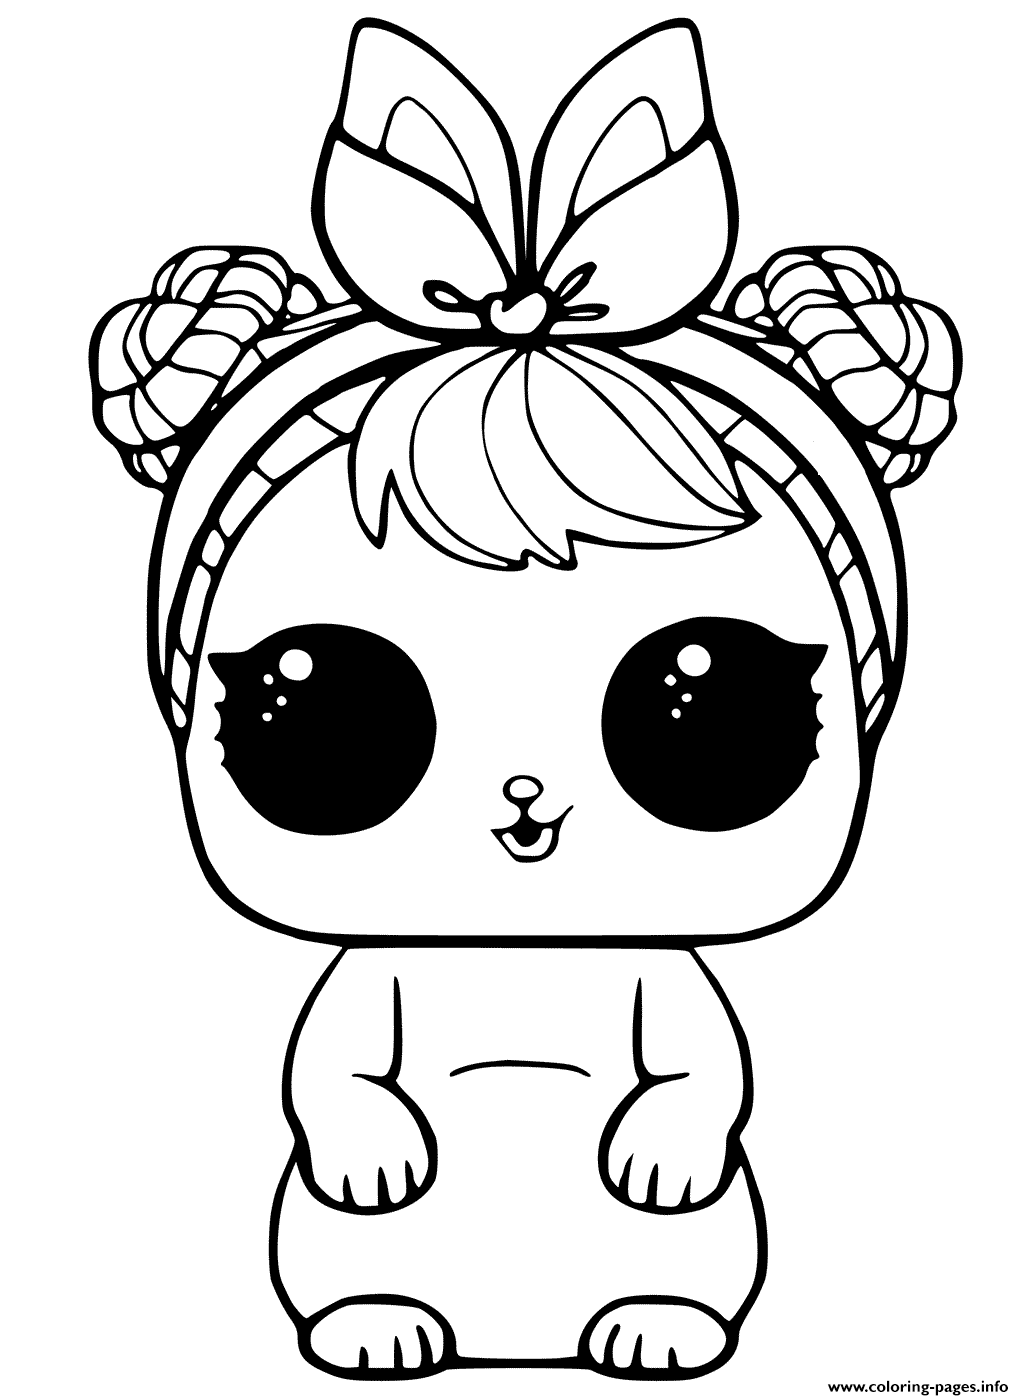 880 Top Lol Pets Coloring Pages To Print Images & Pictures In HD